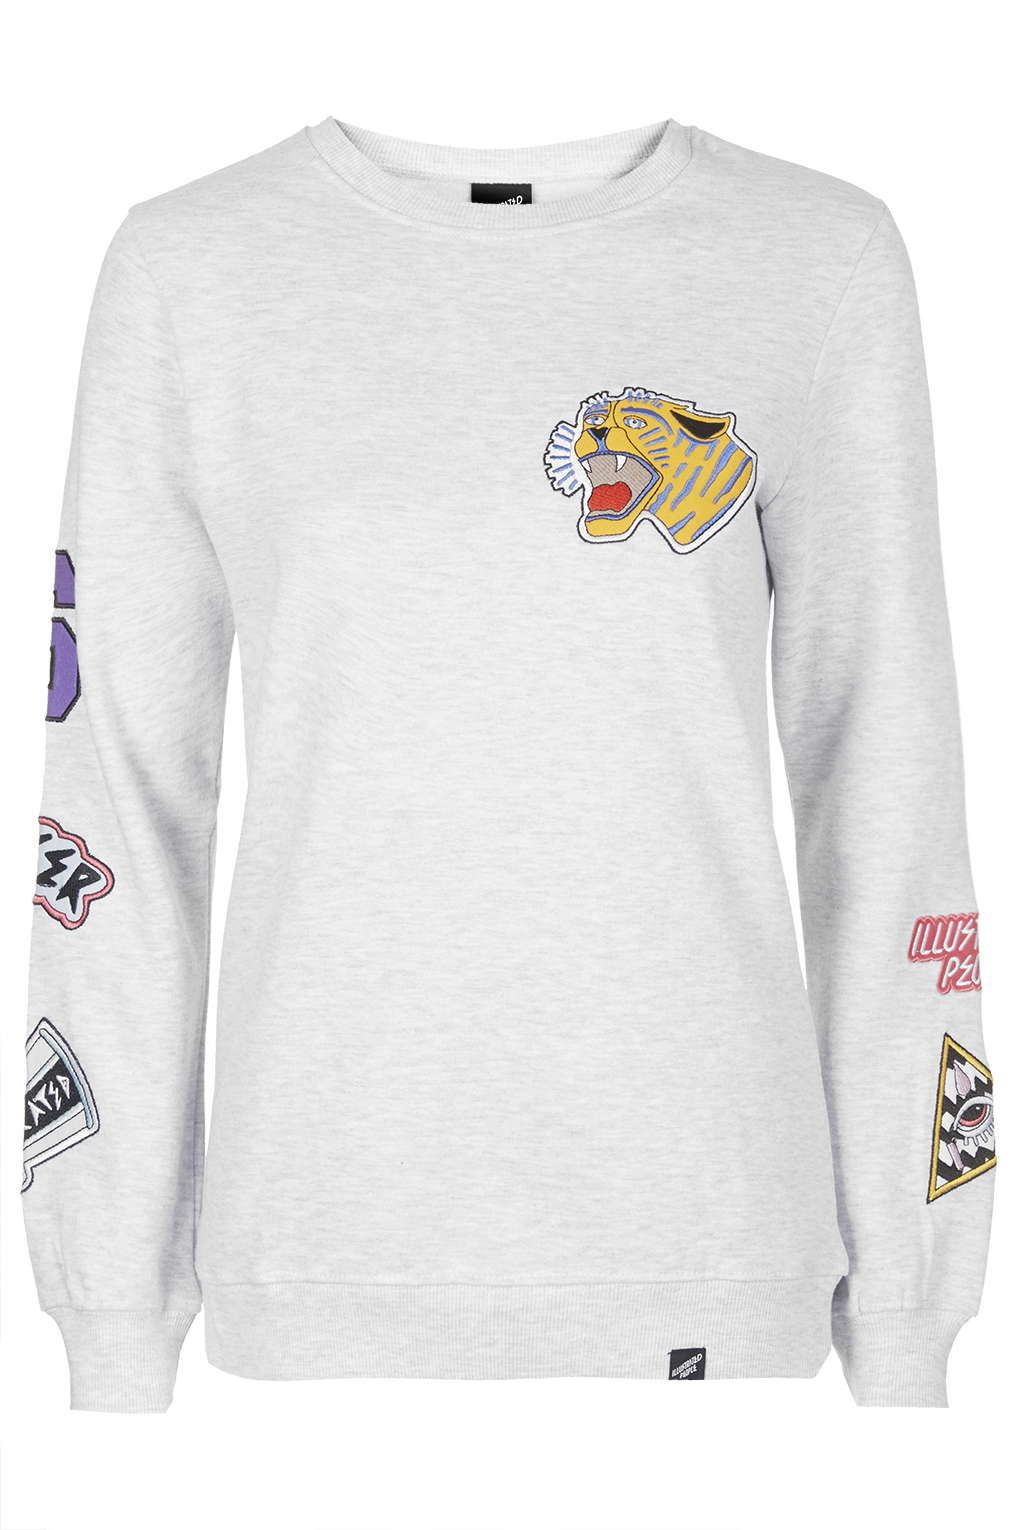 f046aee90 Varsity Roar Sweater by Illustrated People | SS16 | Sweaters ...